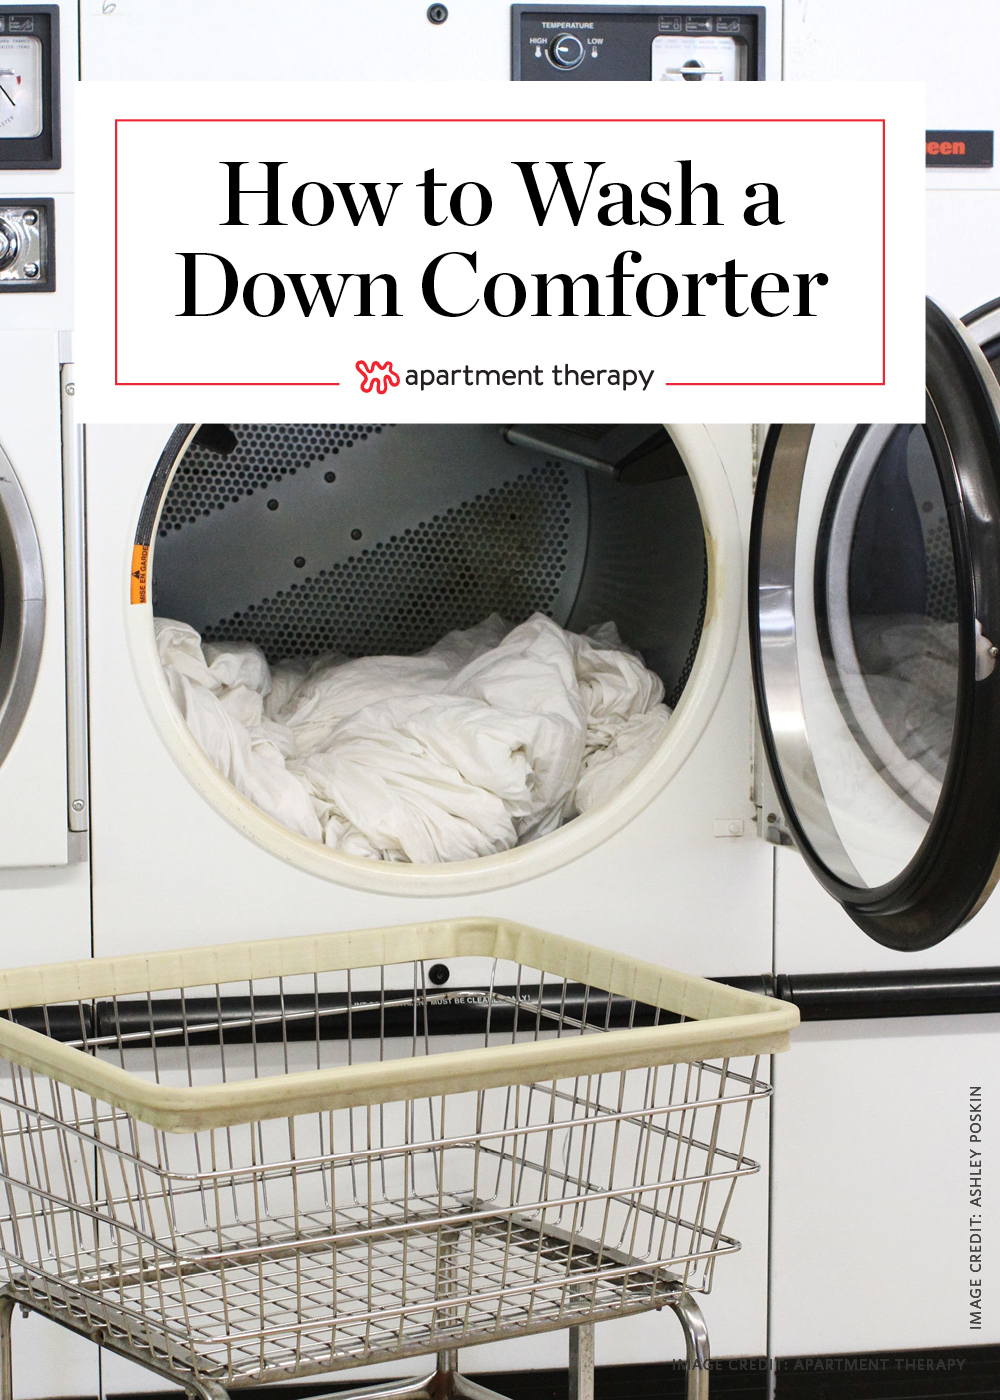 How To Wash A Down Comforter Apartment Therapy